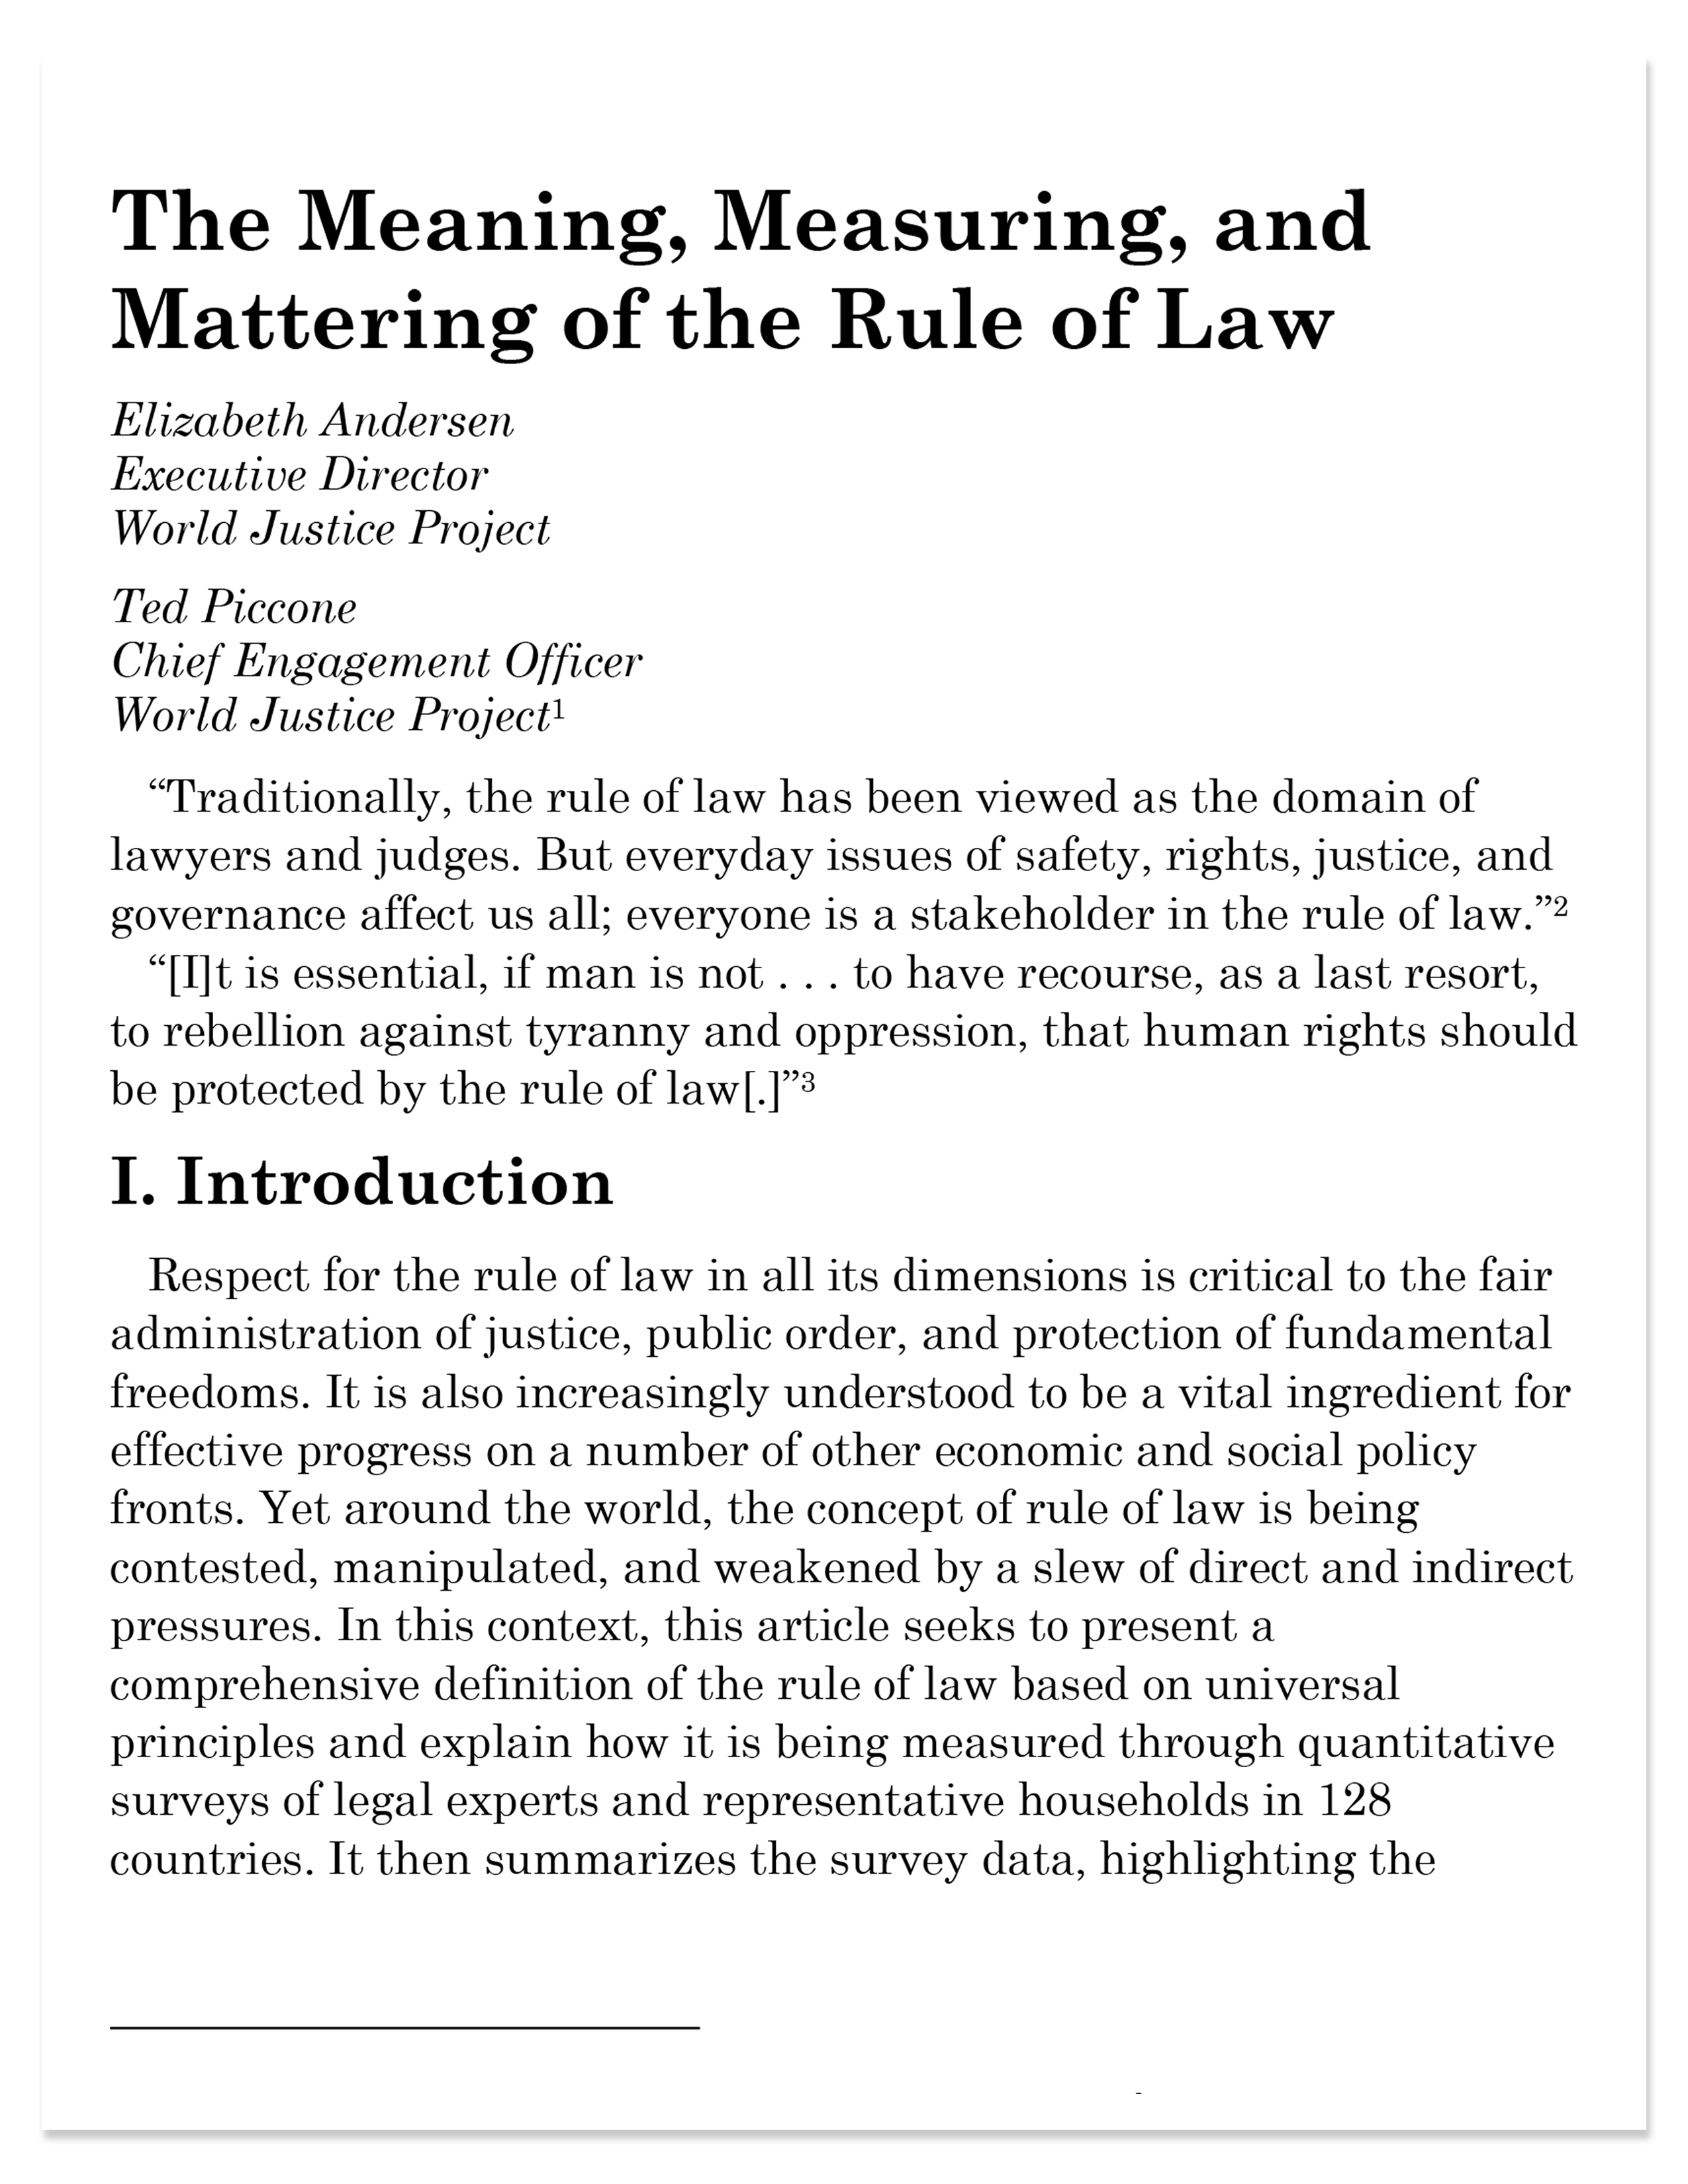 The Meaning, Measuring, and Mattering of the Rule of Law